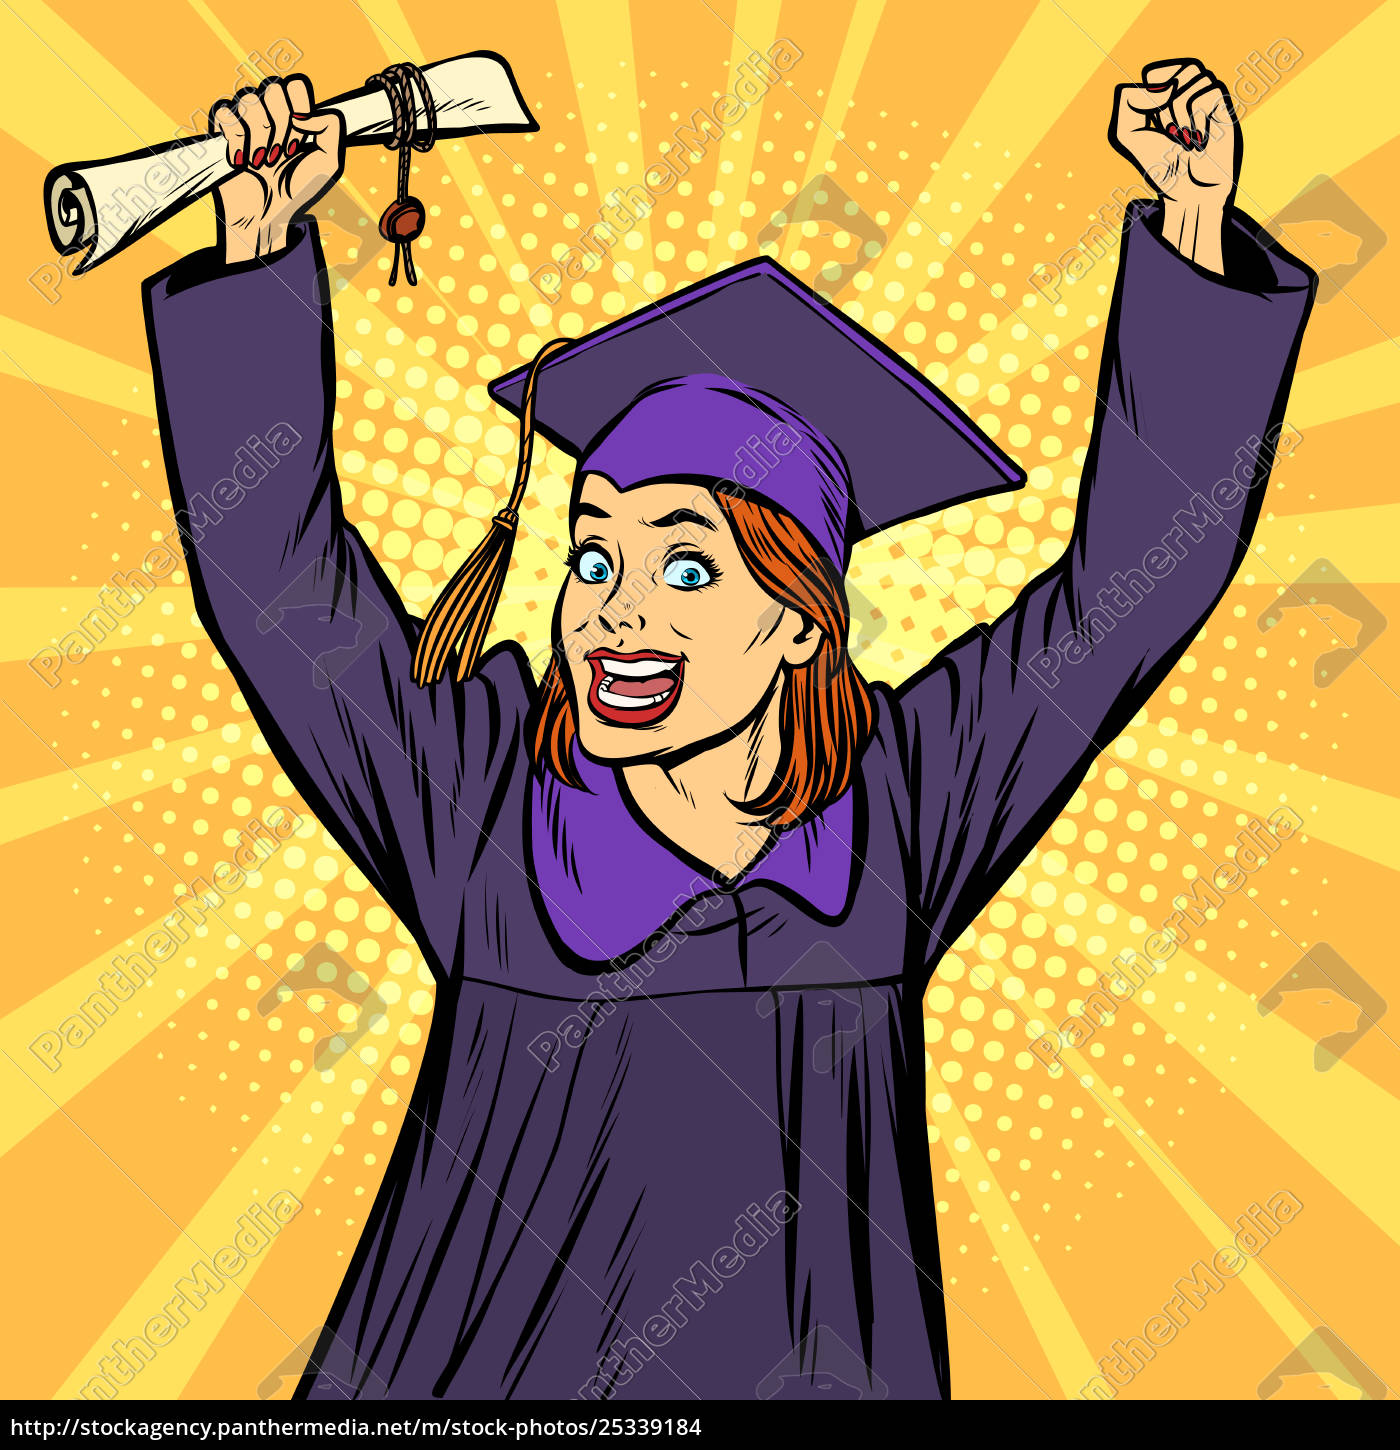 joyful, woman, graduate, victorious, gesture, hands - 25339184